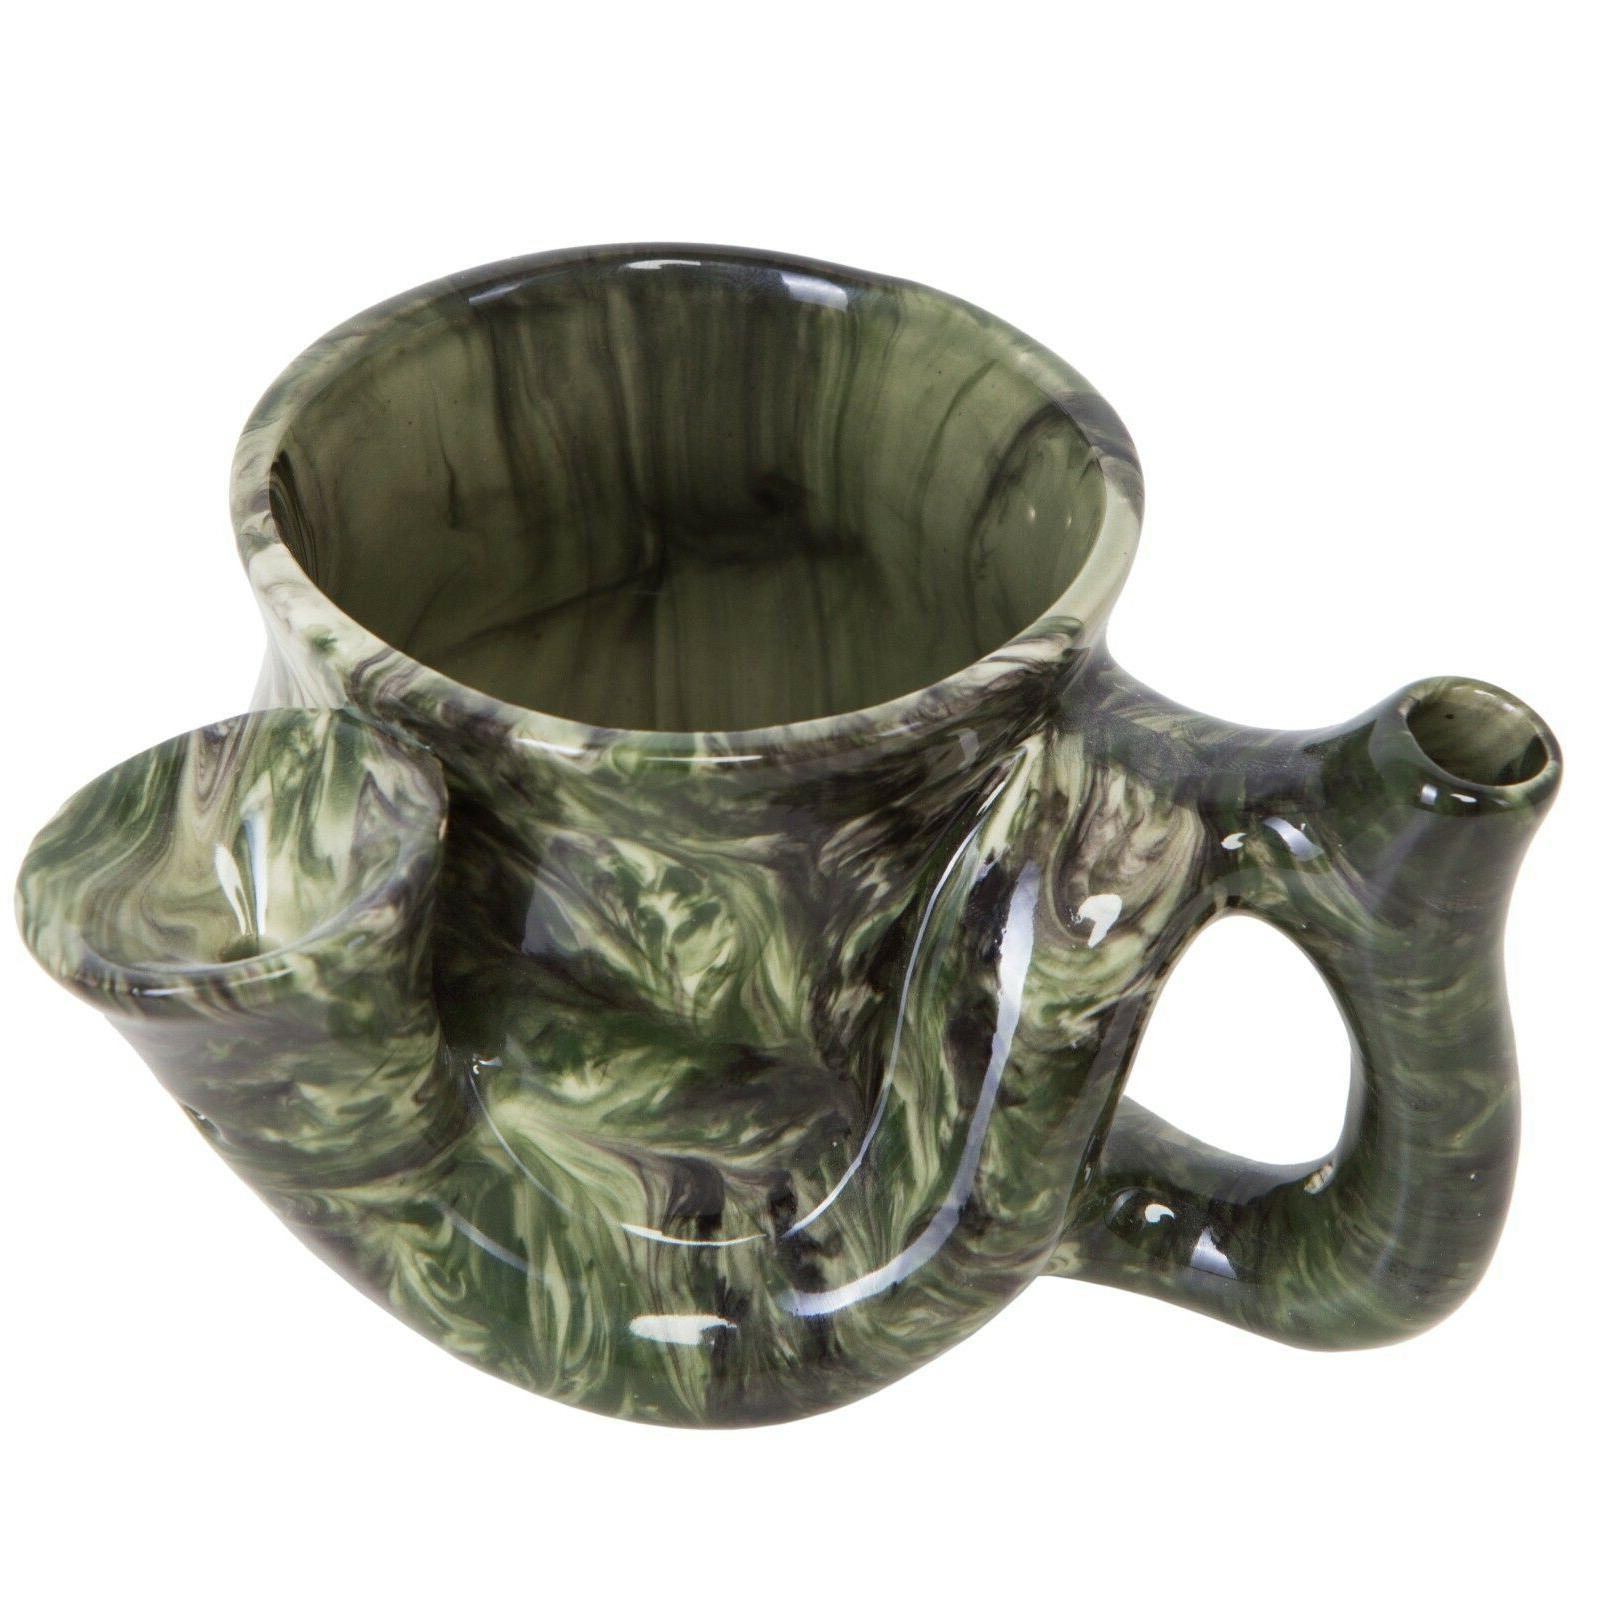 Wake and Bake coffee mug Smoking Pipe mug all in one. Funny